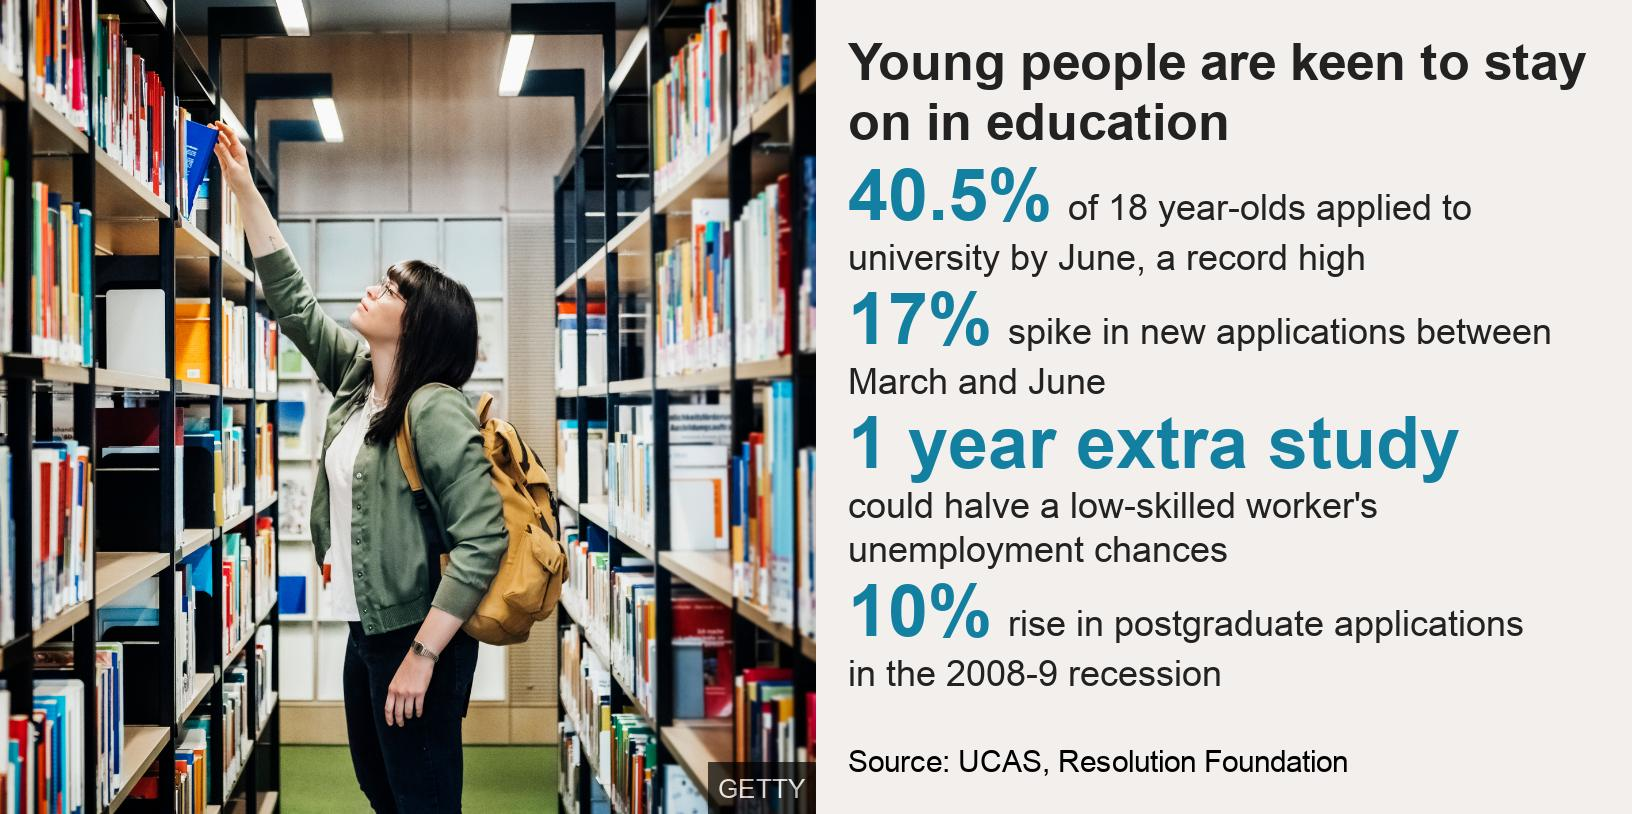 Young people are keen to stay on in education.   [ 40.5% of 18 year-olds applied to university by June, a record high ],[ 17% spike in new applications between March and June ],[ 1 year extra study could halve a low-skilled worker's unemployment chances ],[ 10% rise in postgraduate applications in the 2008-9 recession  ], Source: Source: UCAS, Resolution Foundation, Image: Woman in library